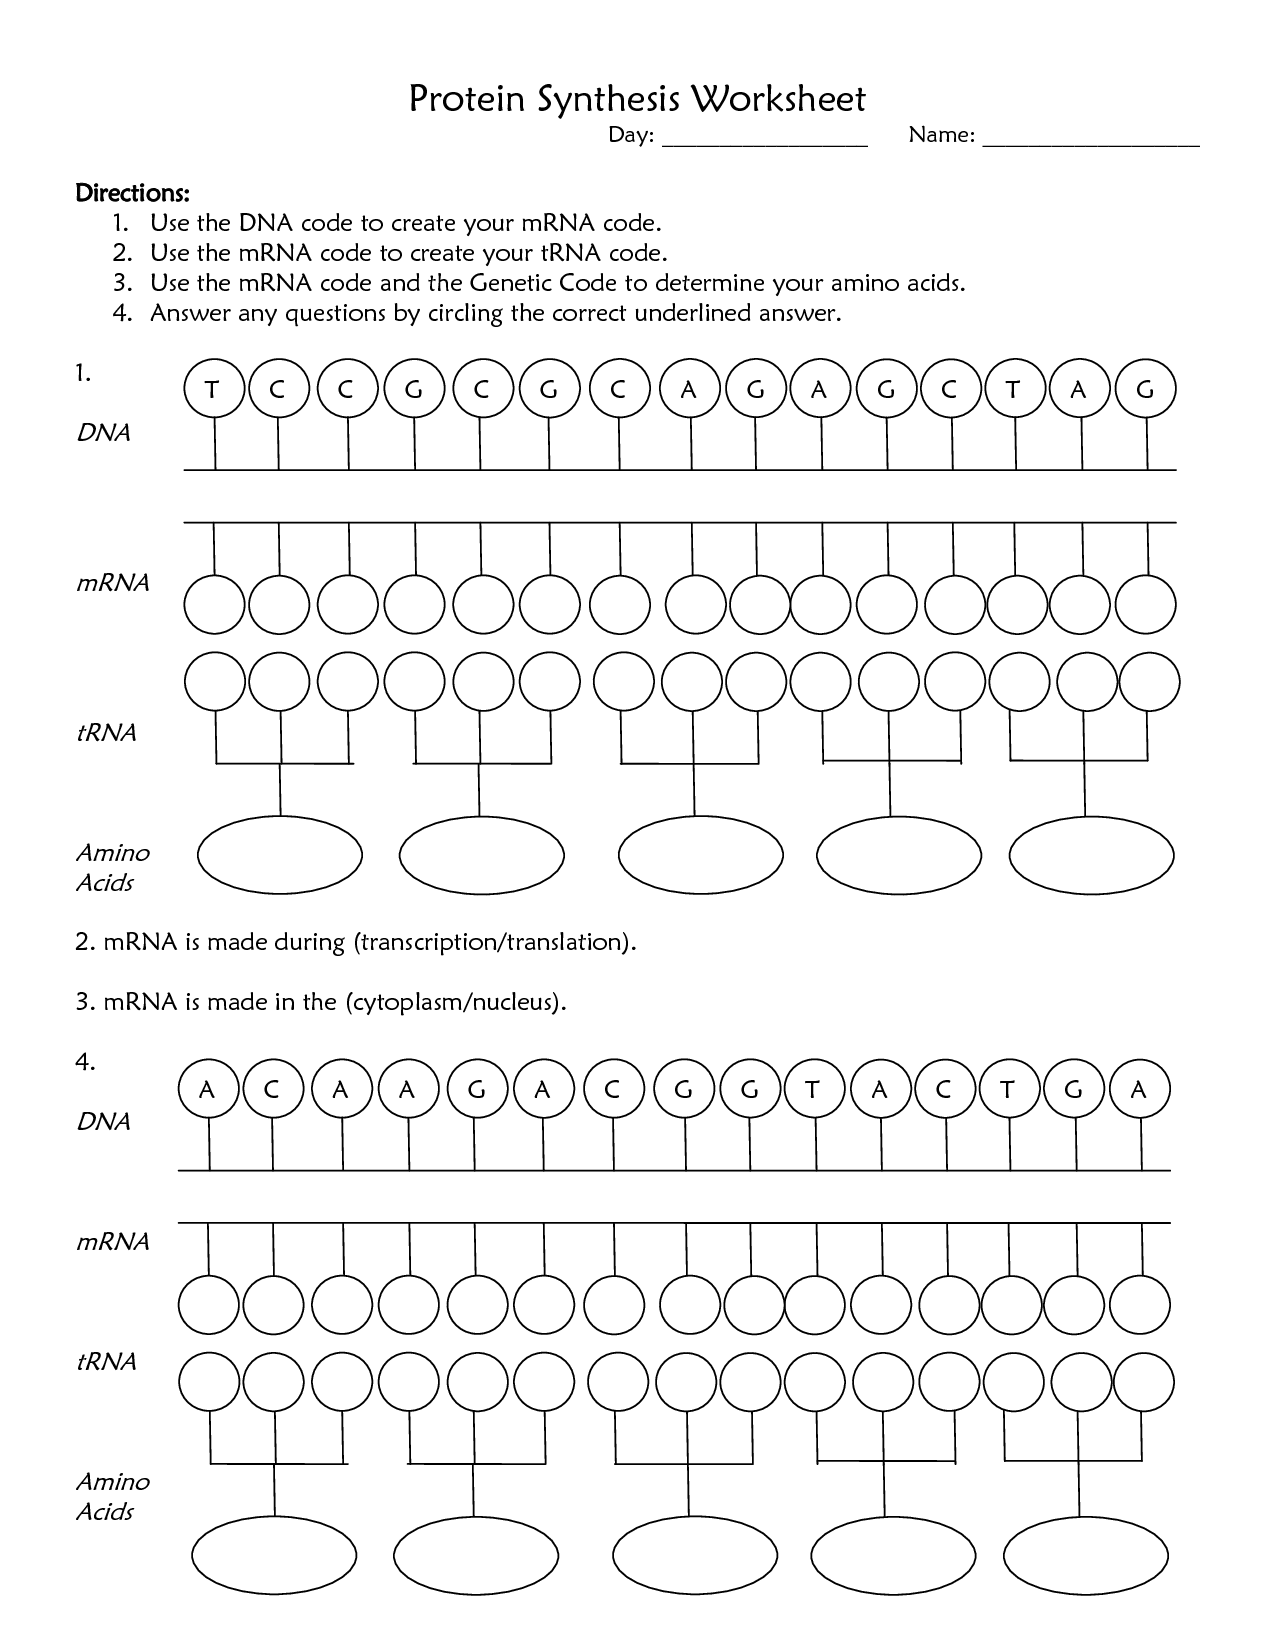 Worksheet Determination Of Protein Amino Acids From Mrna